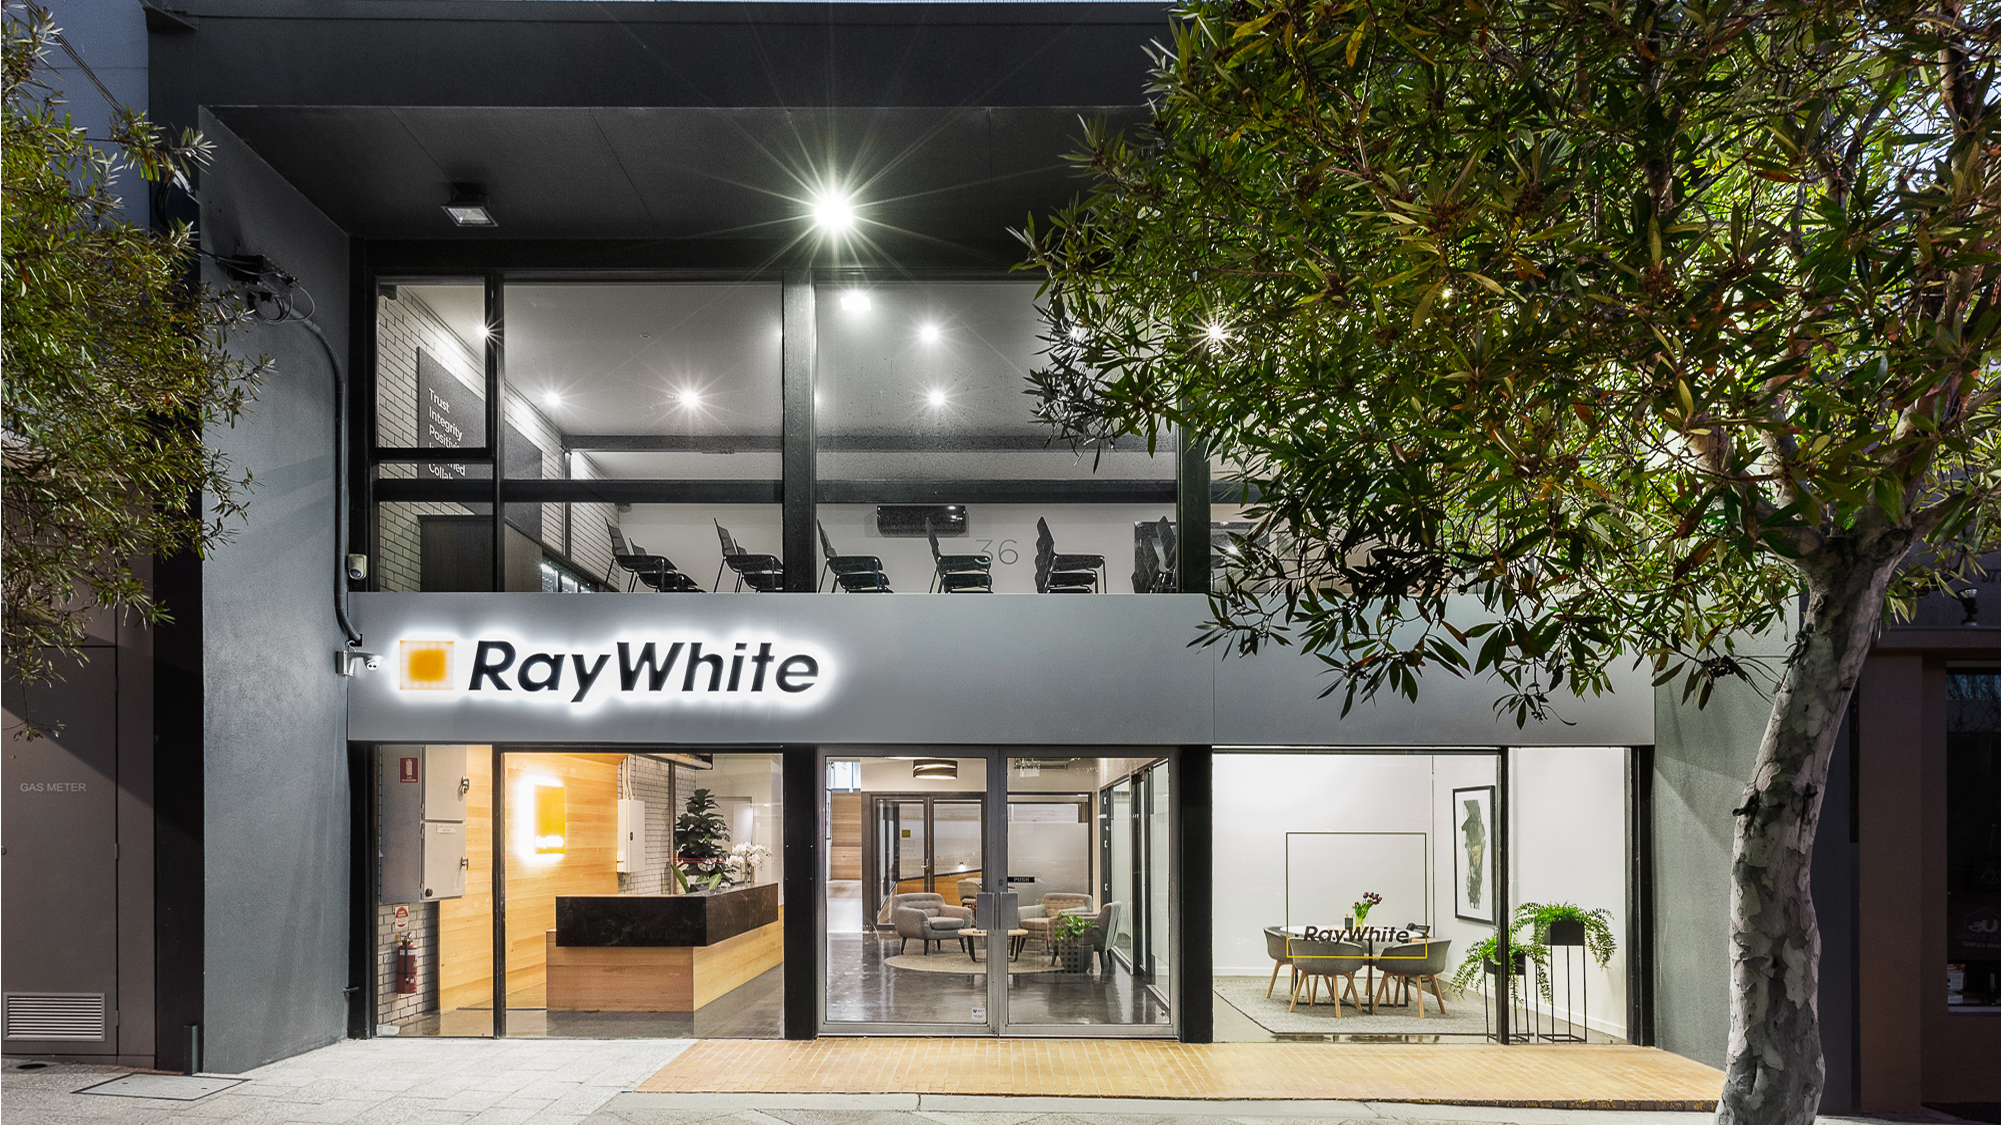 Ray White study shows principals earn more than the benchmark.